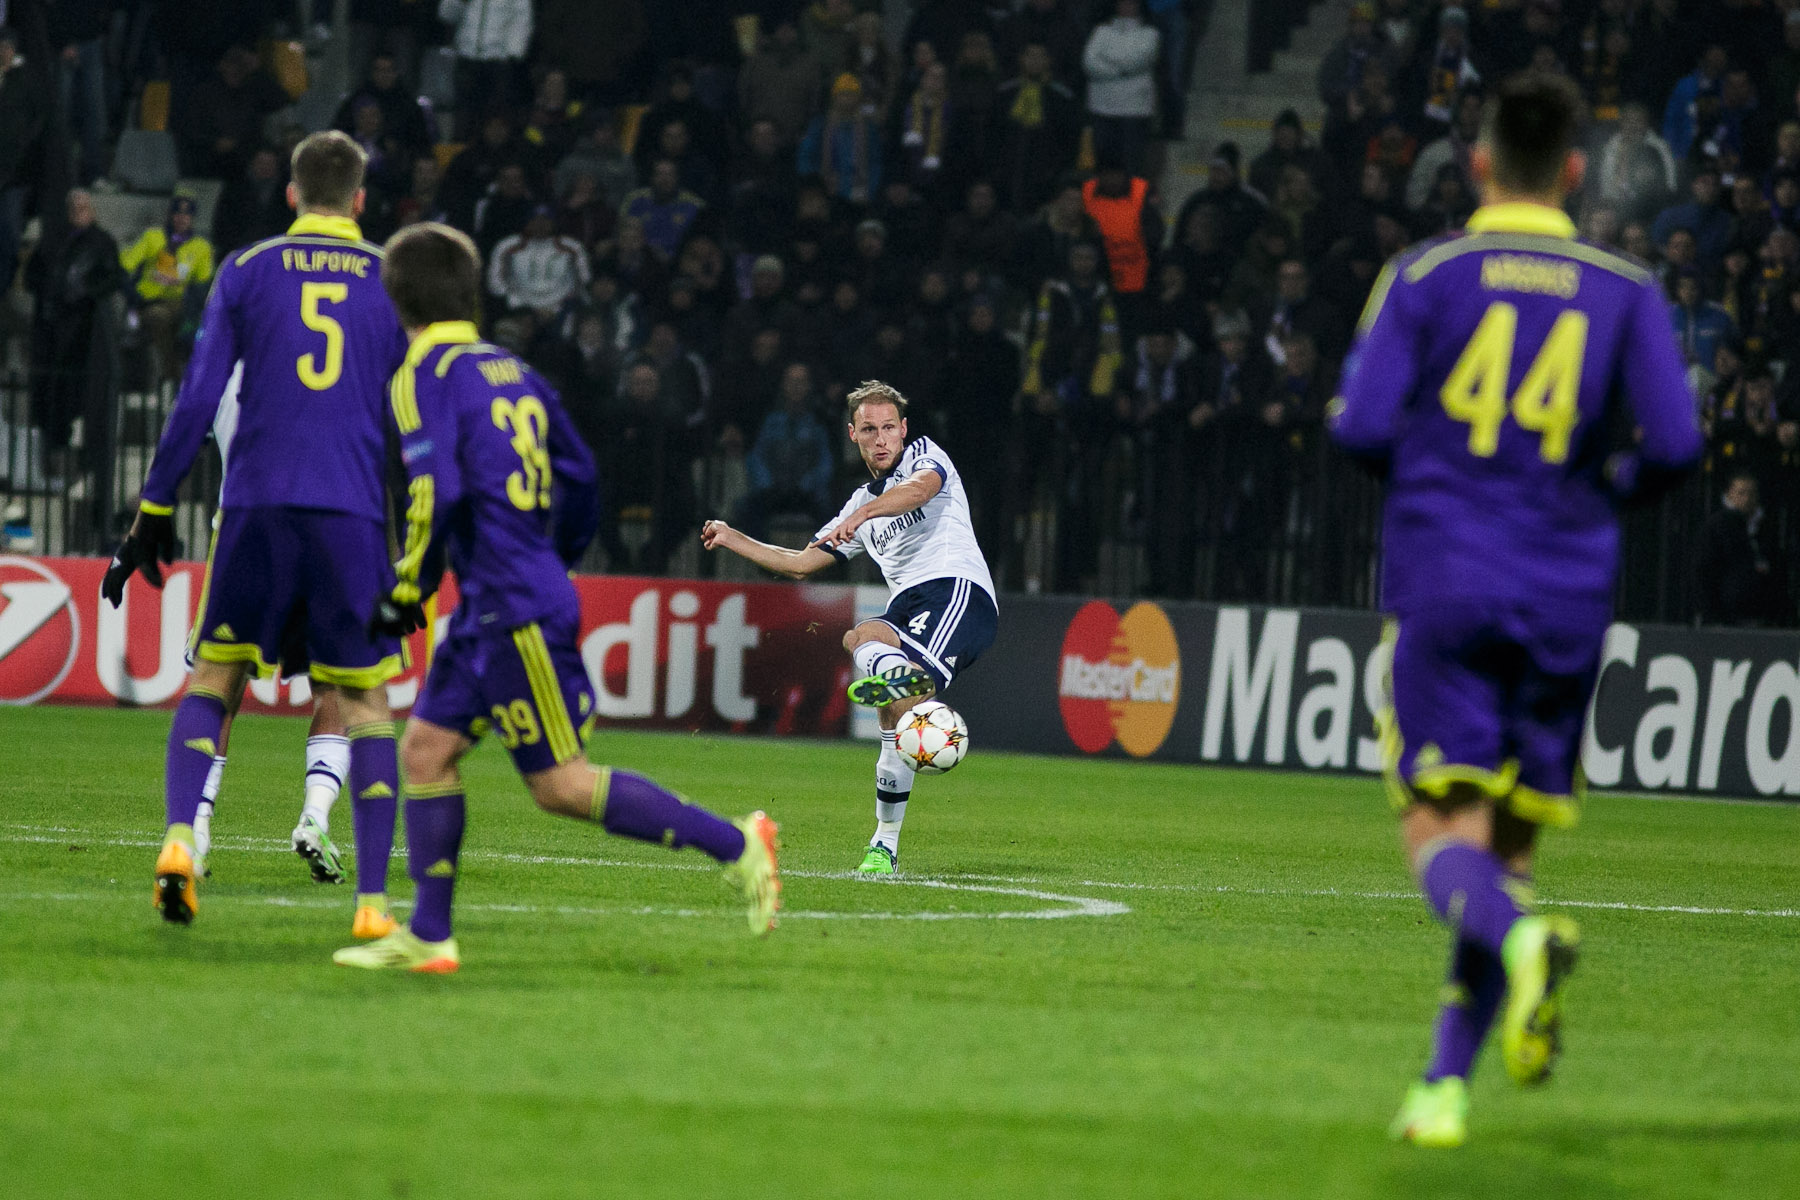 Marvin Friedrich of FC Schalke 04 in action during the UEFA Champions League Group G match against NK Maribor on December 10 in Maribor, Slovenia.